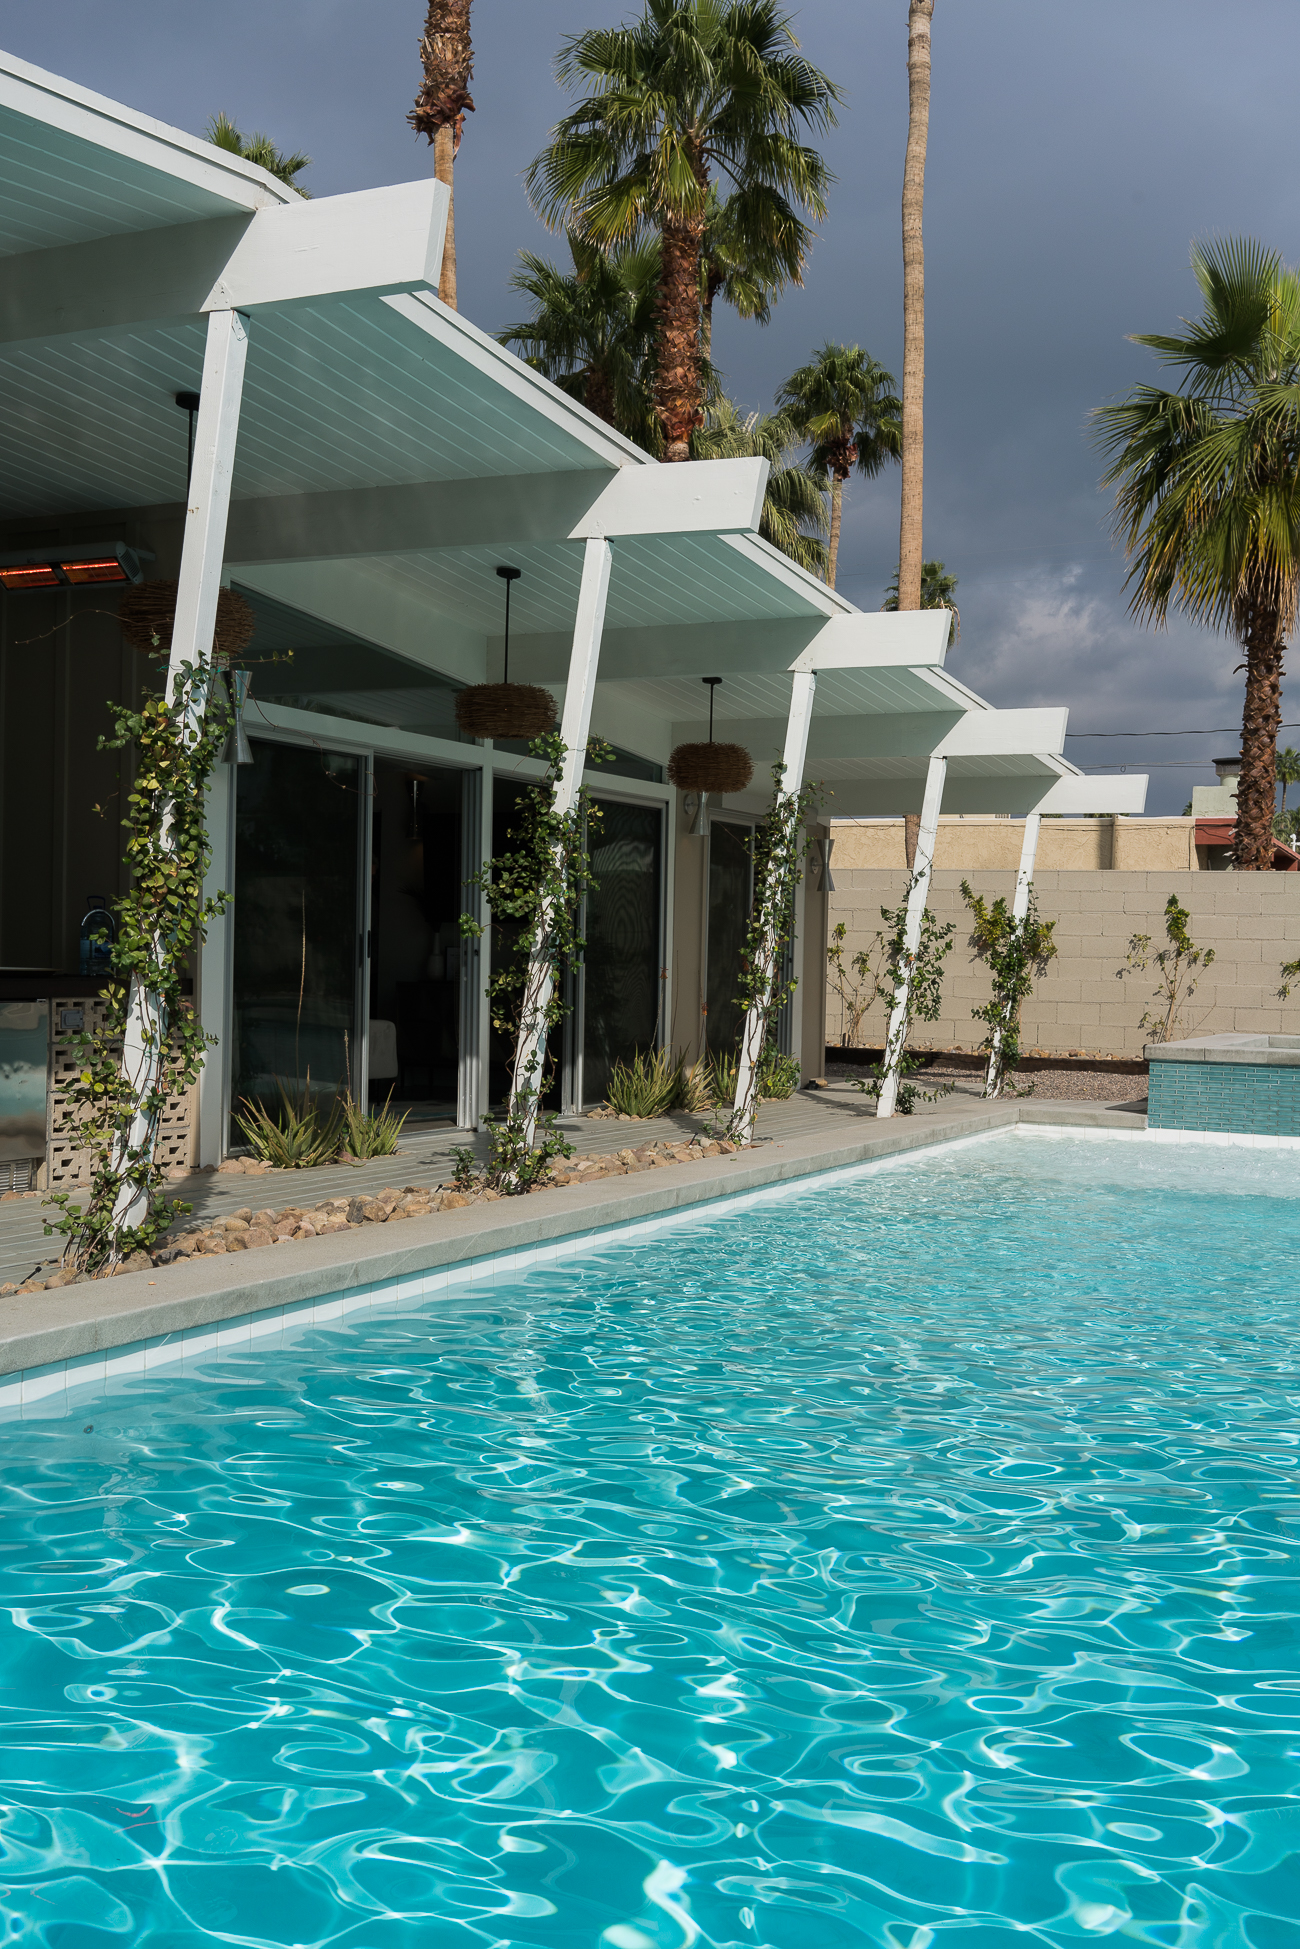 West Elm House - Modernism Week / See and Savour